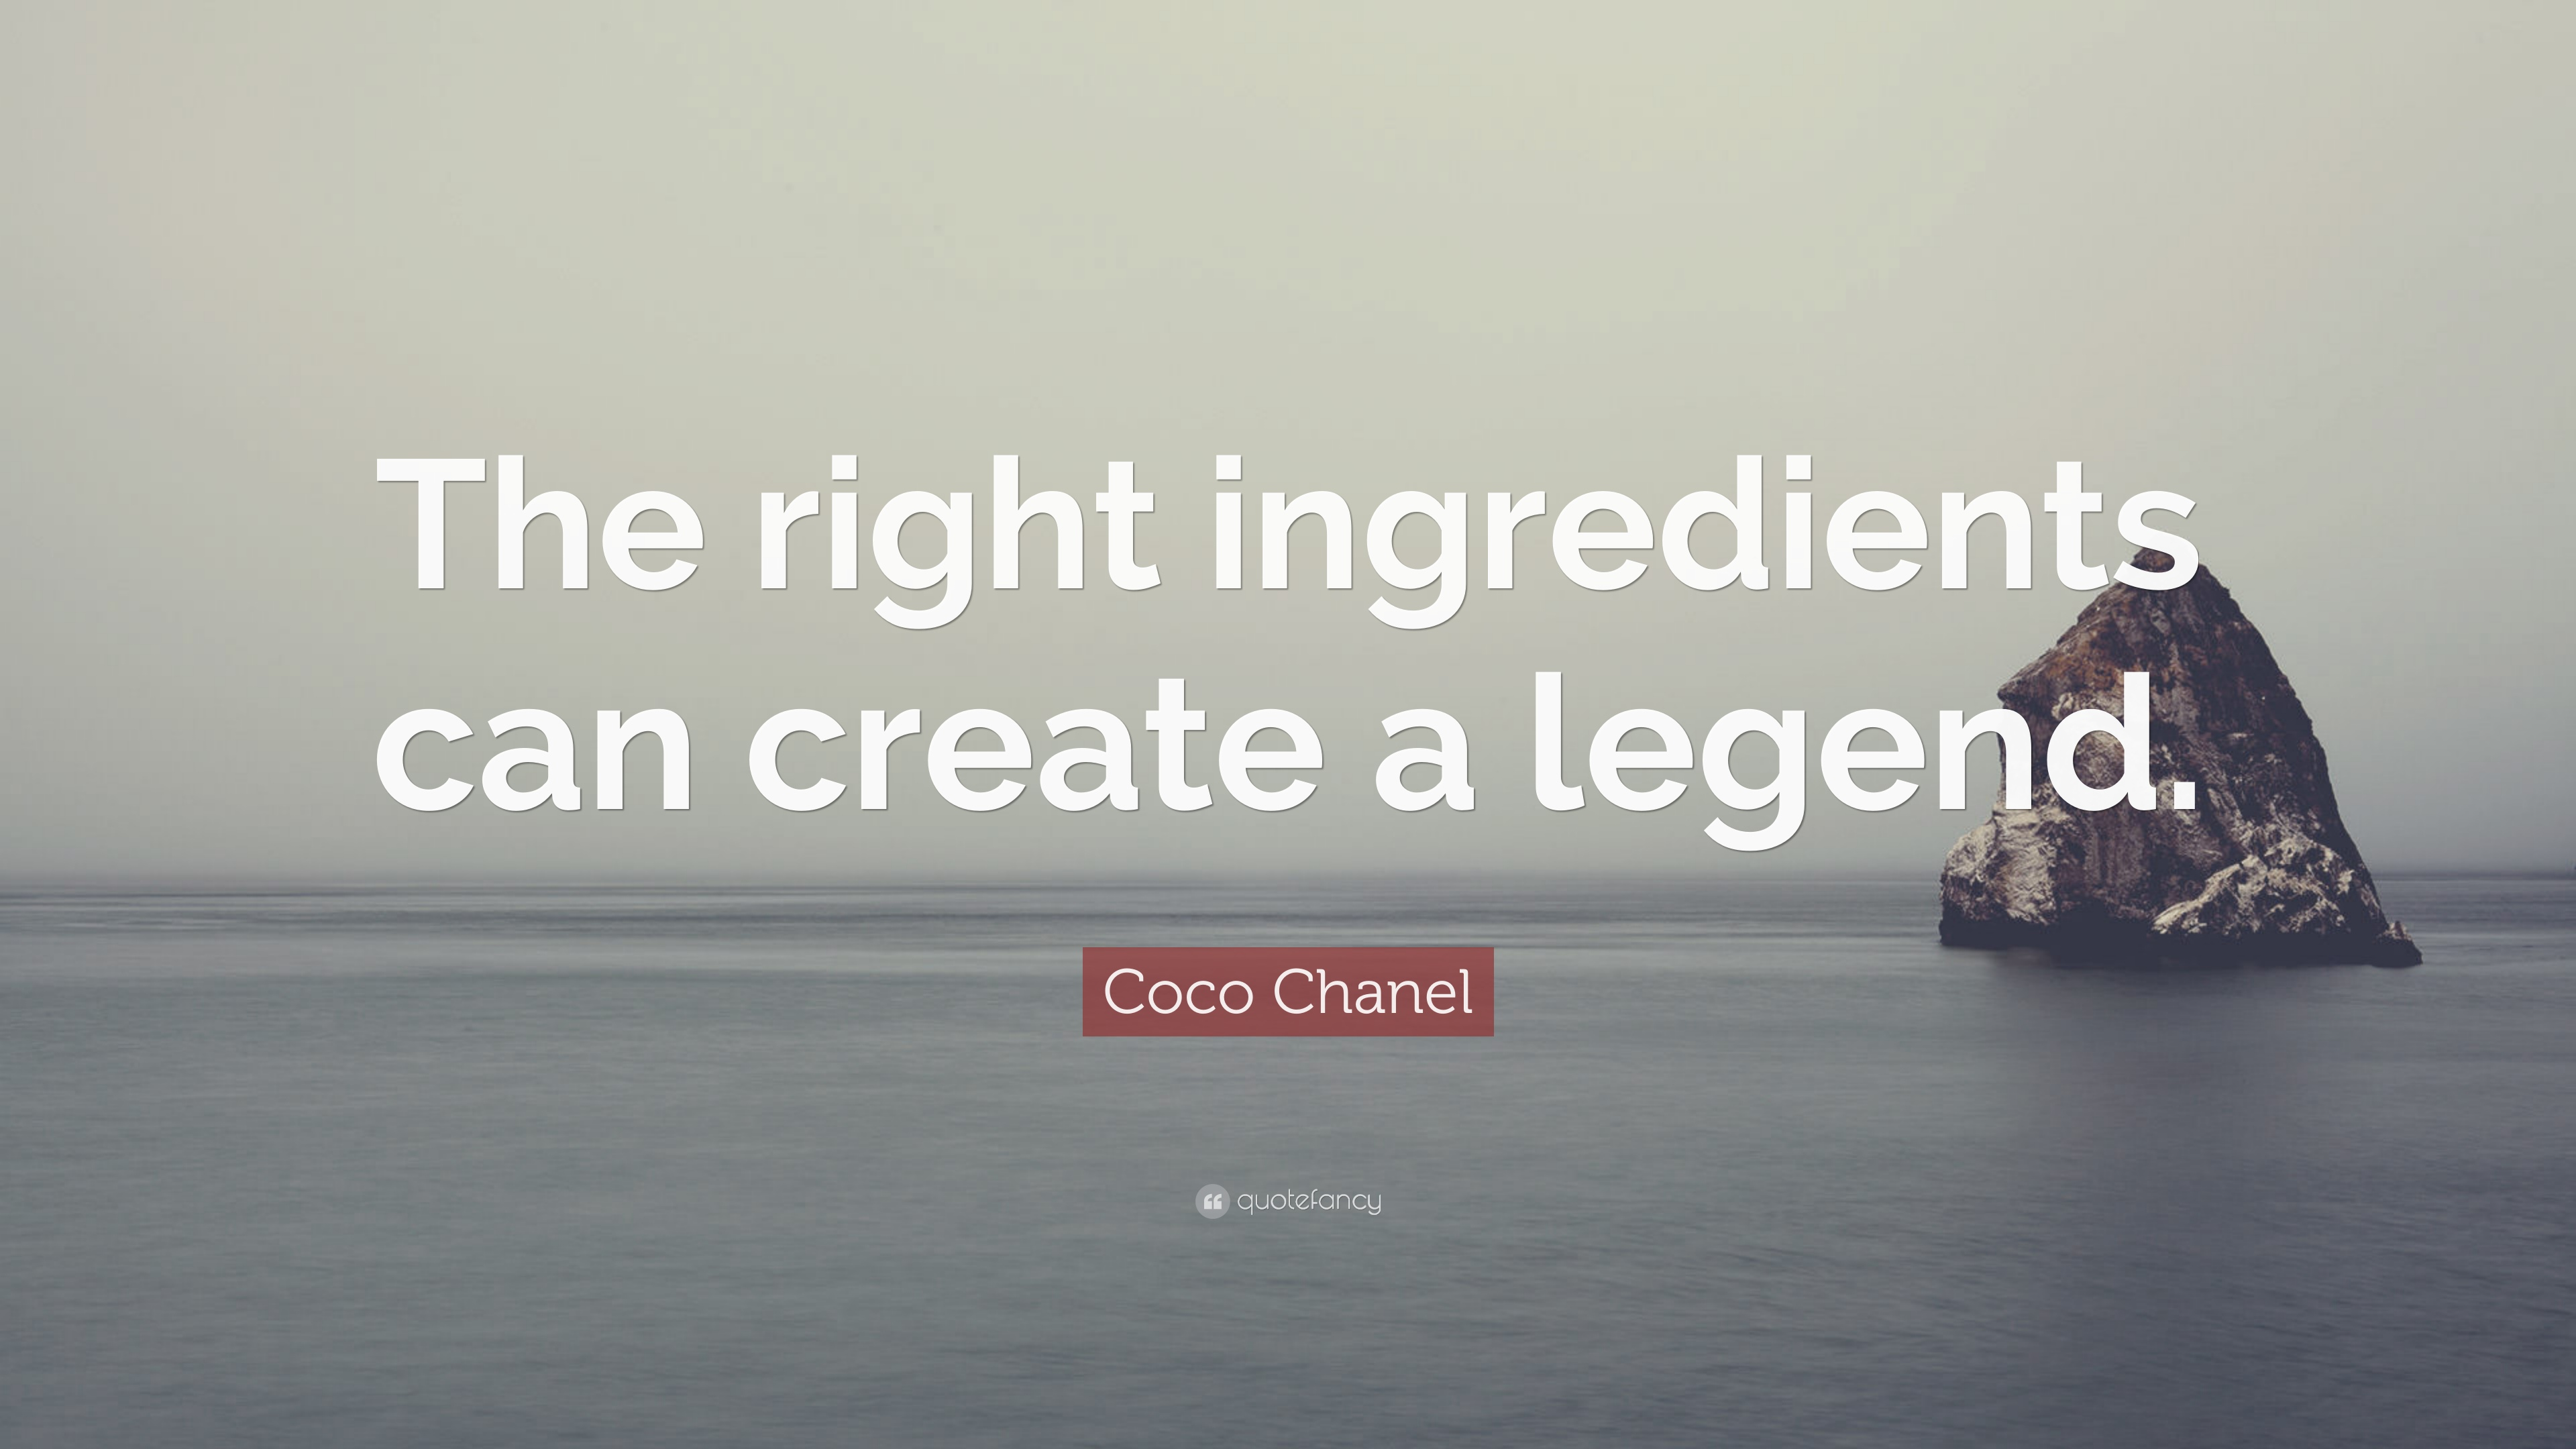 coco chanel quote the right ingredients can create a legend 12 wallpapers quotefancy. Black Bedroom Furniture Sets. Home Design Ideas